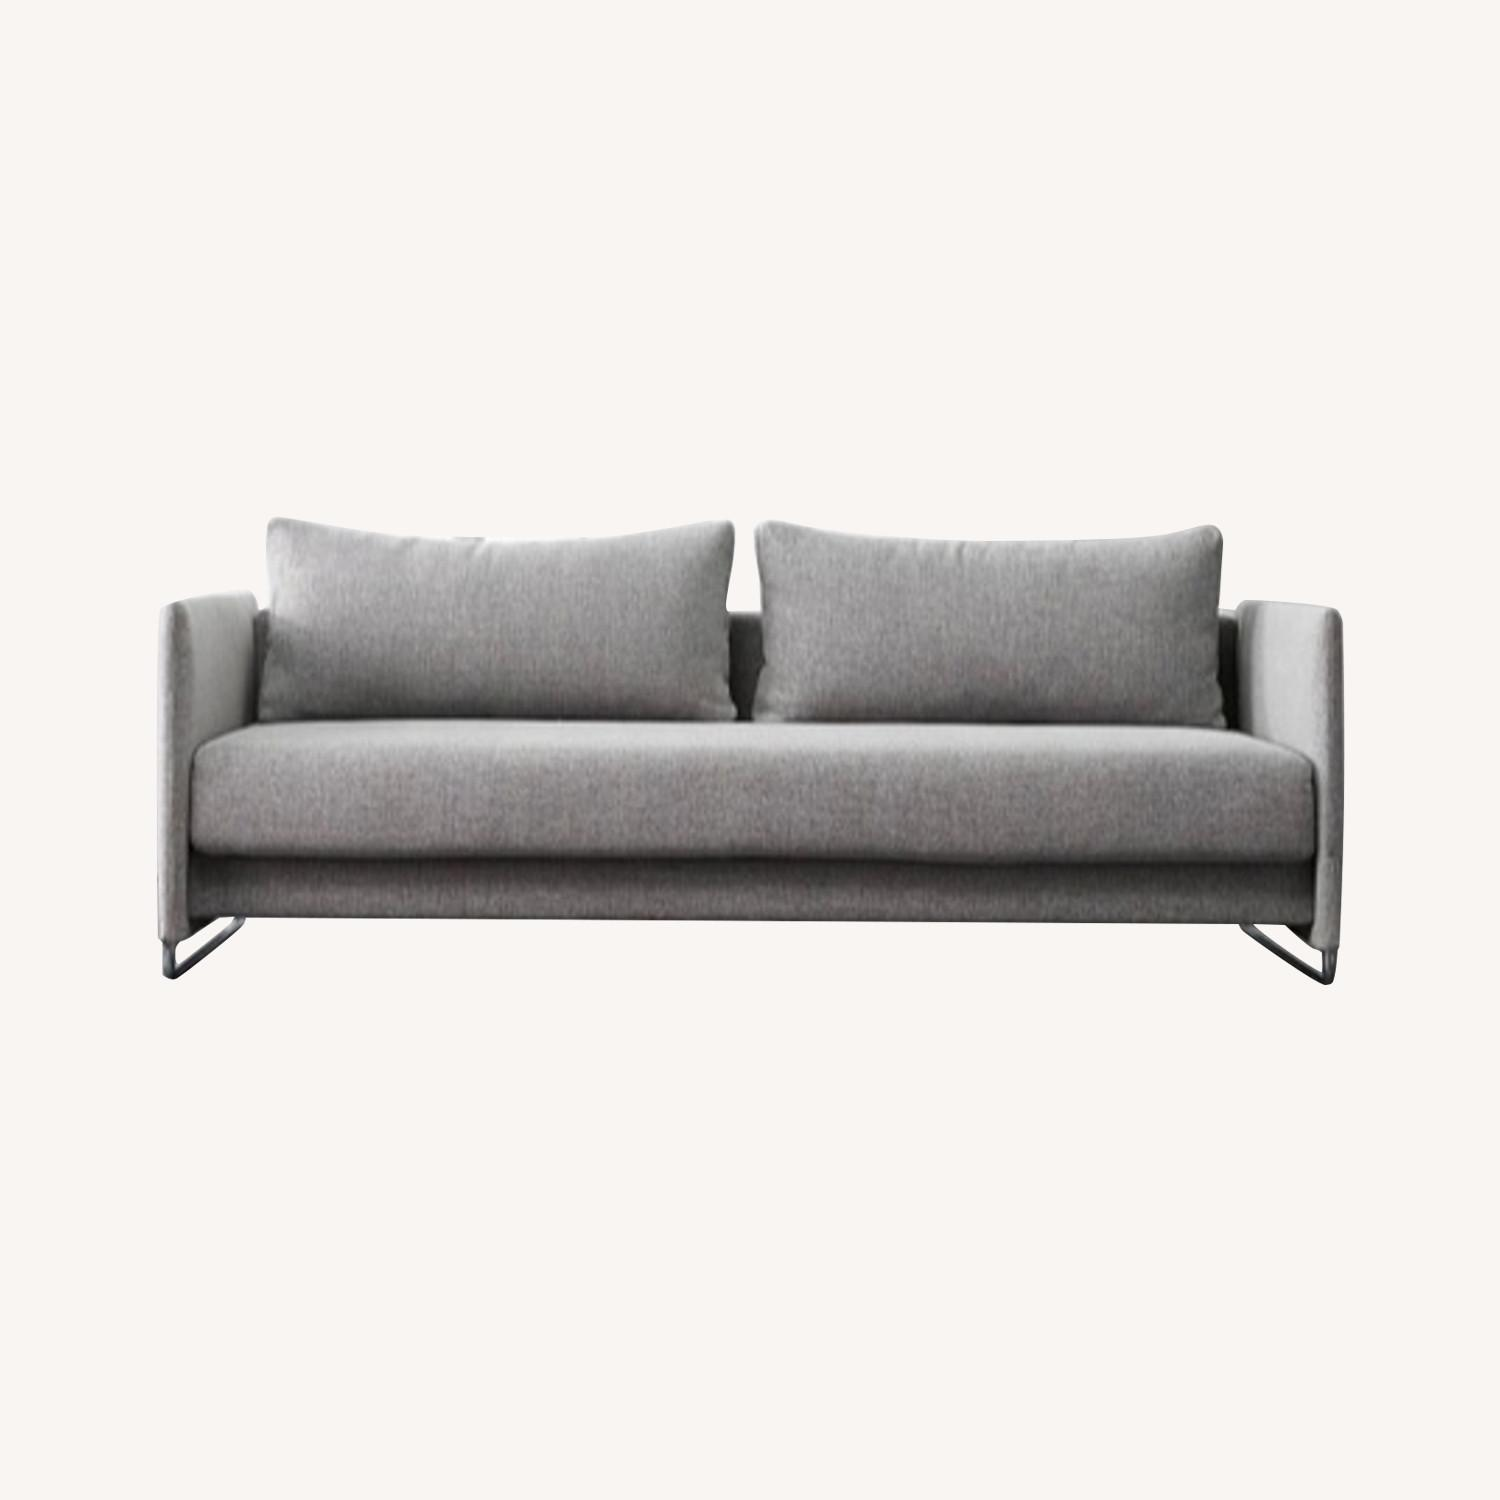 CB2 Couch - image-0